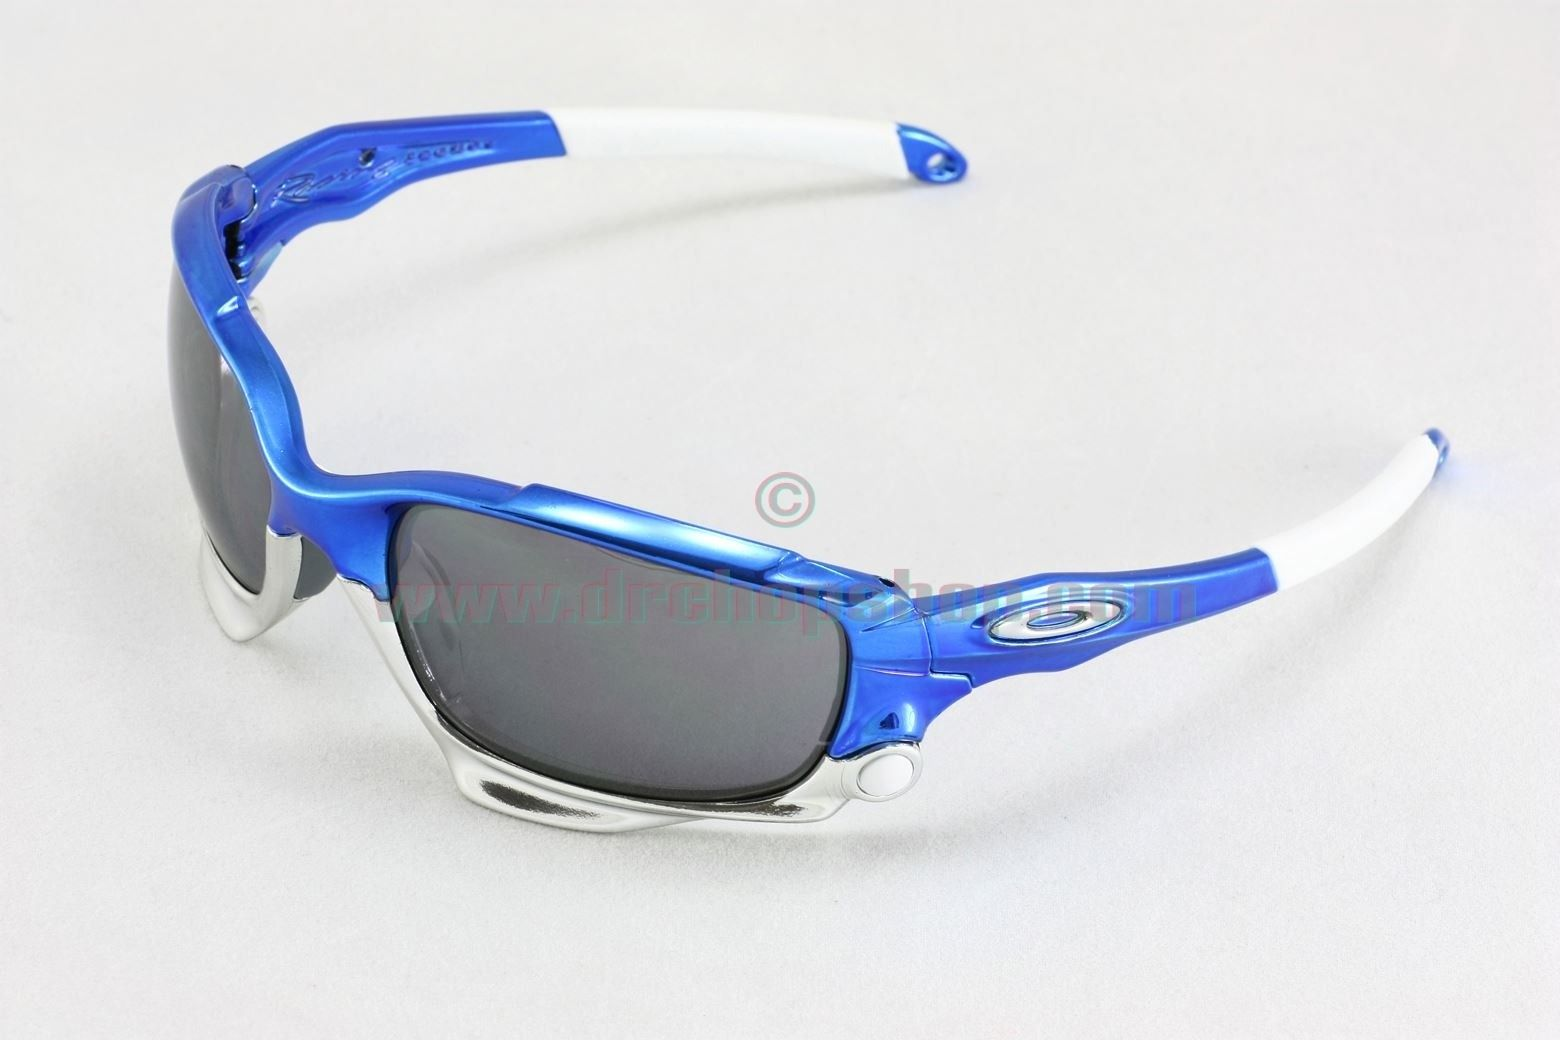 Frogskins, Racing Jacket, Hijinx, & More Customs - 1097840_654713471207009_1579833864_o.jpg